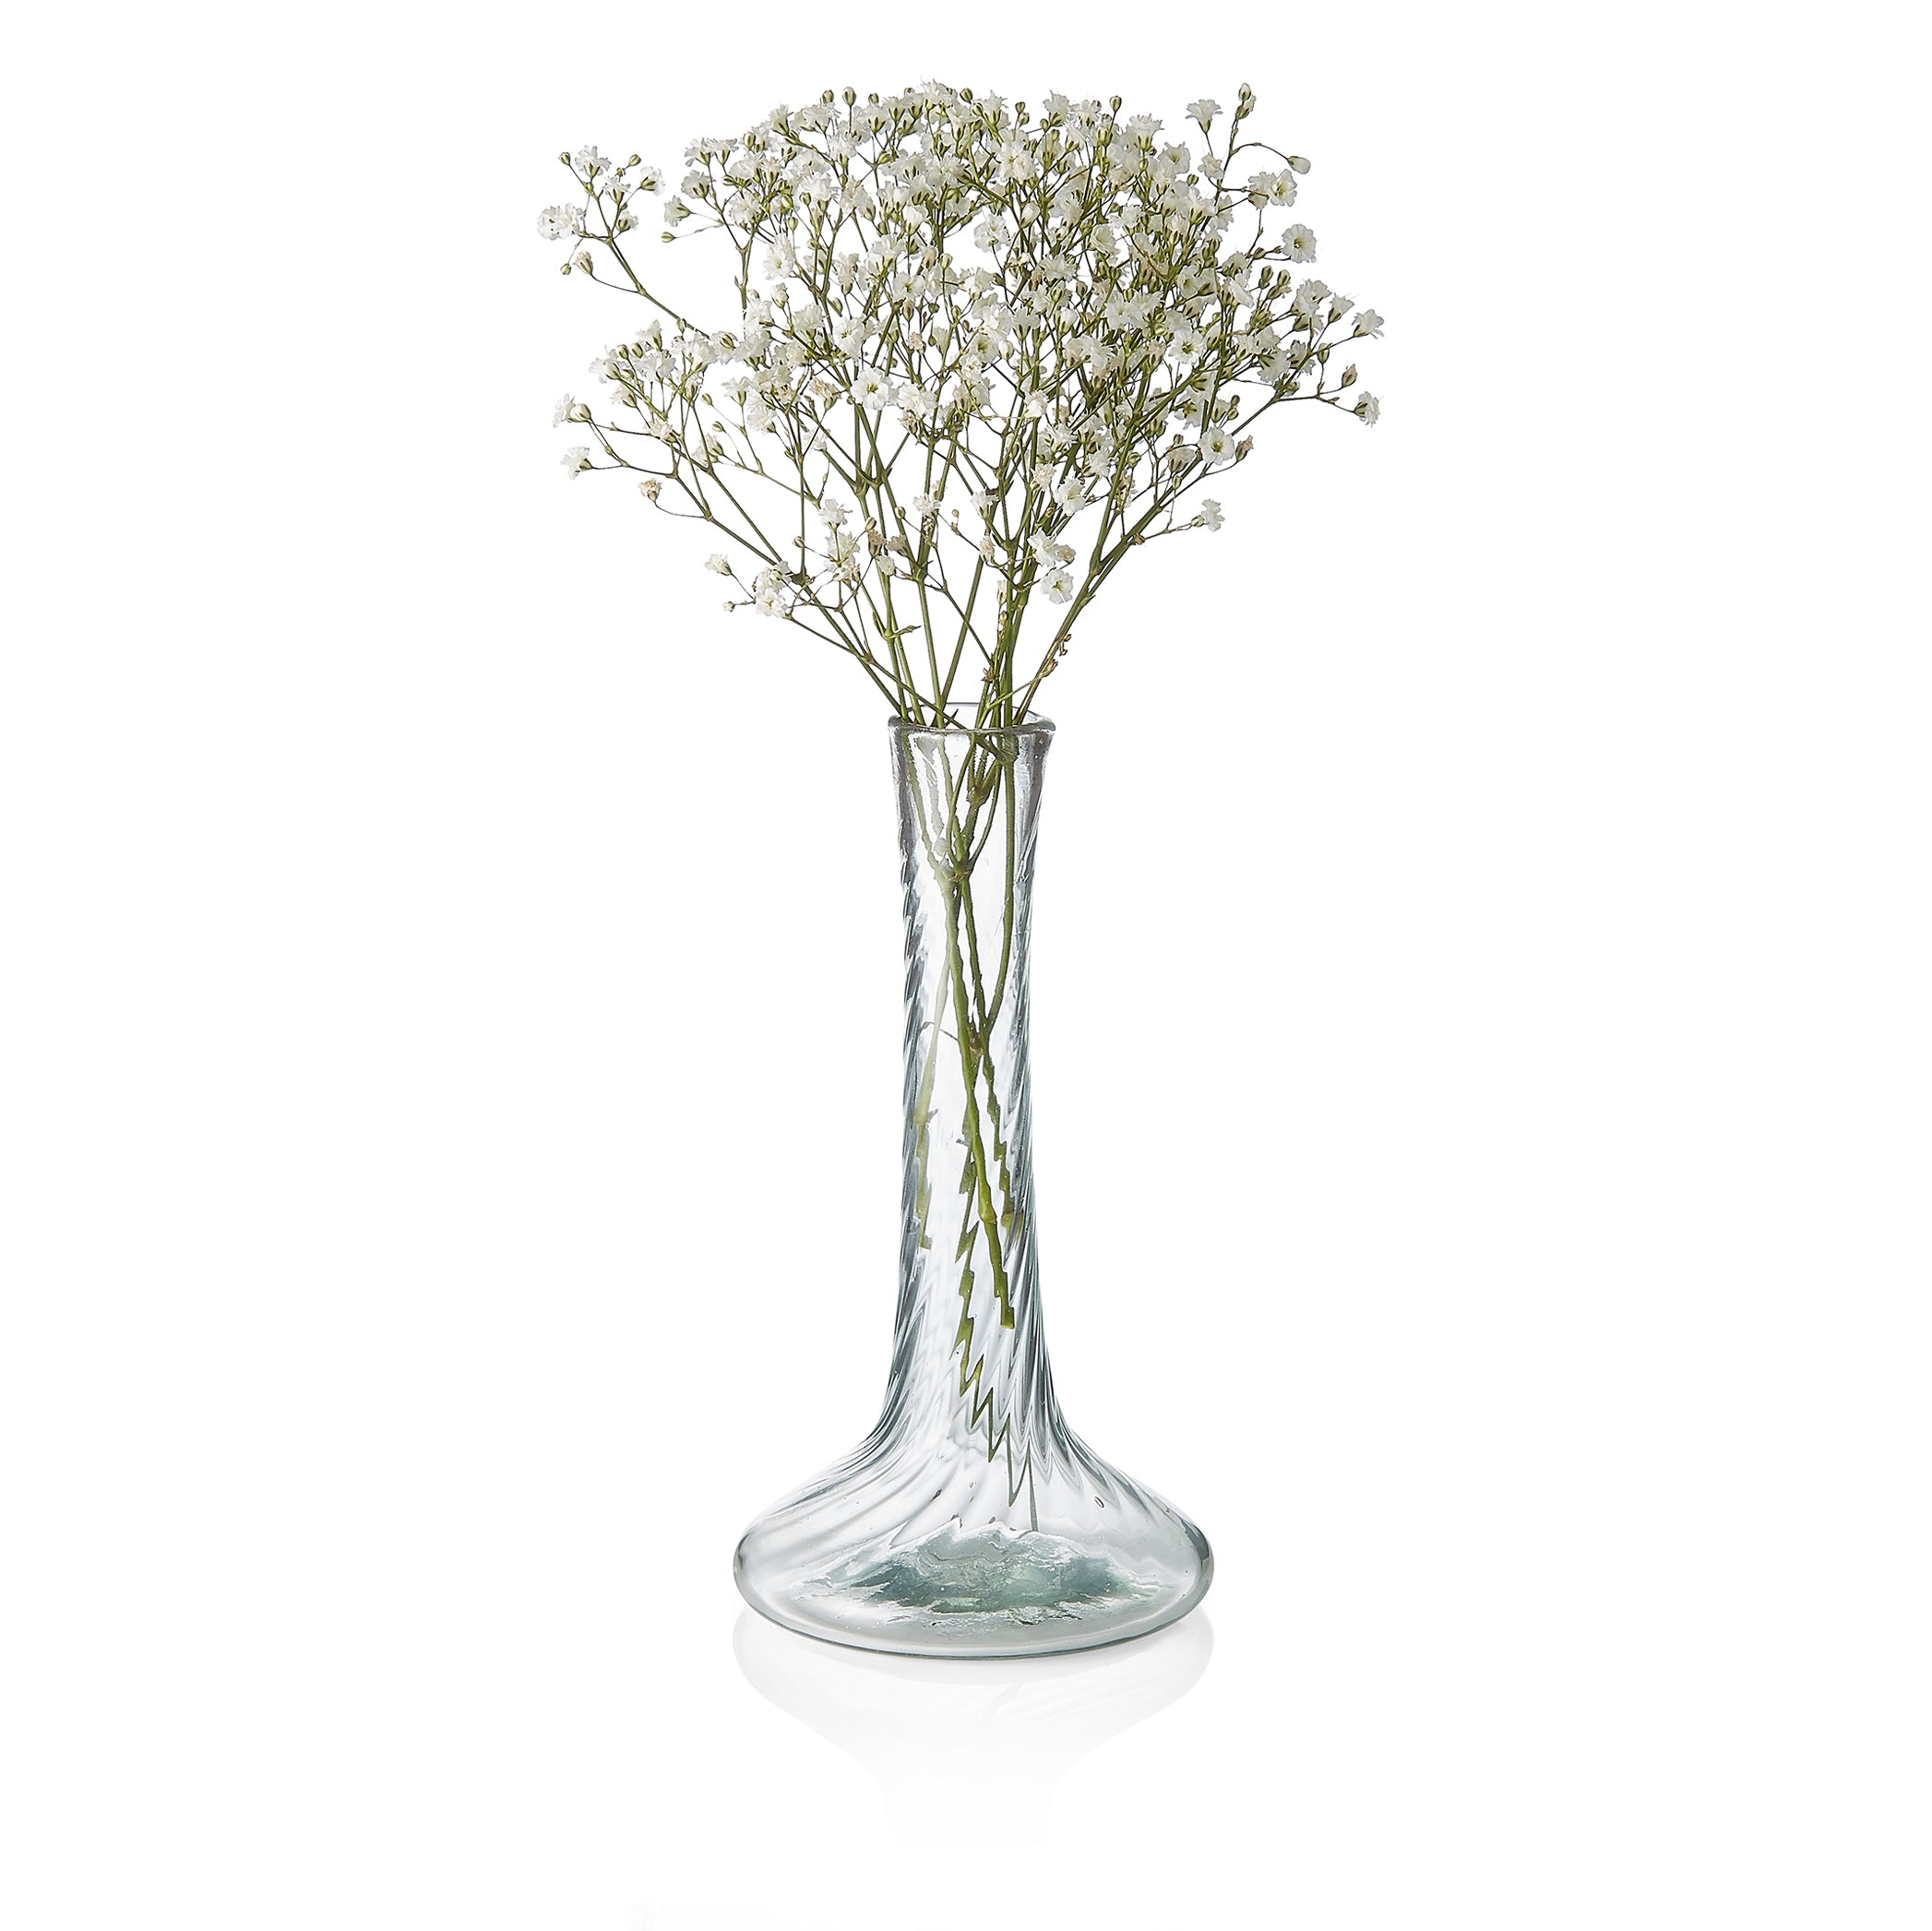 Handblown Glass Ridged Stem Vase, 18cm